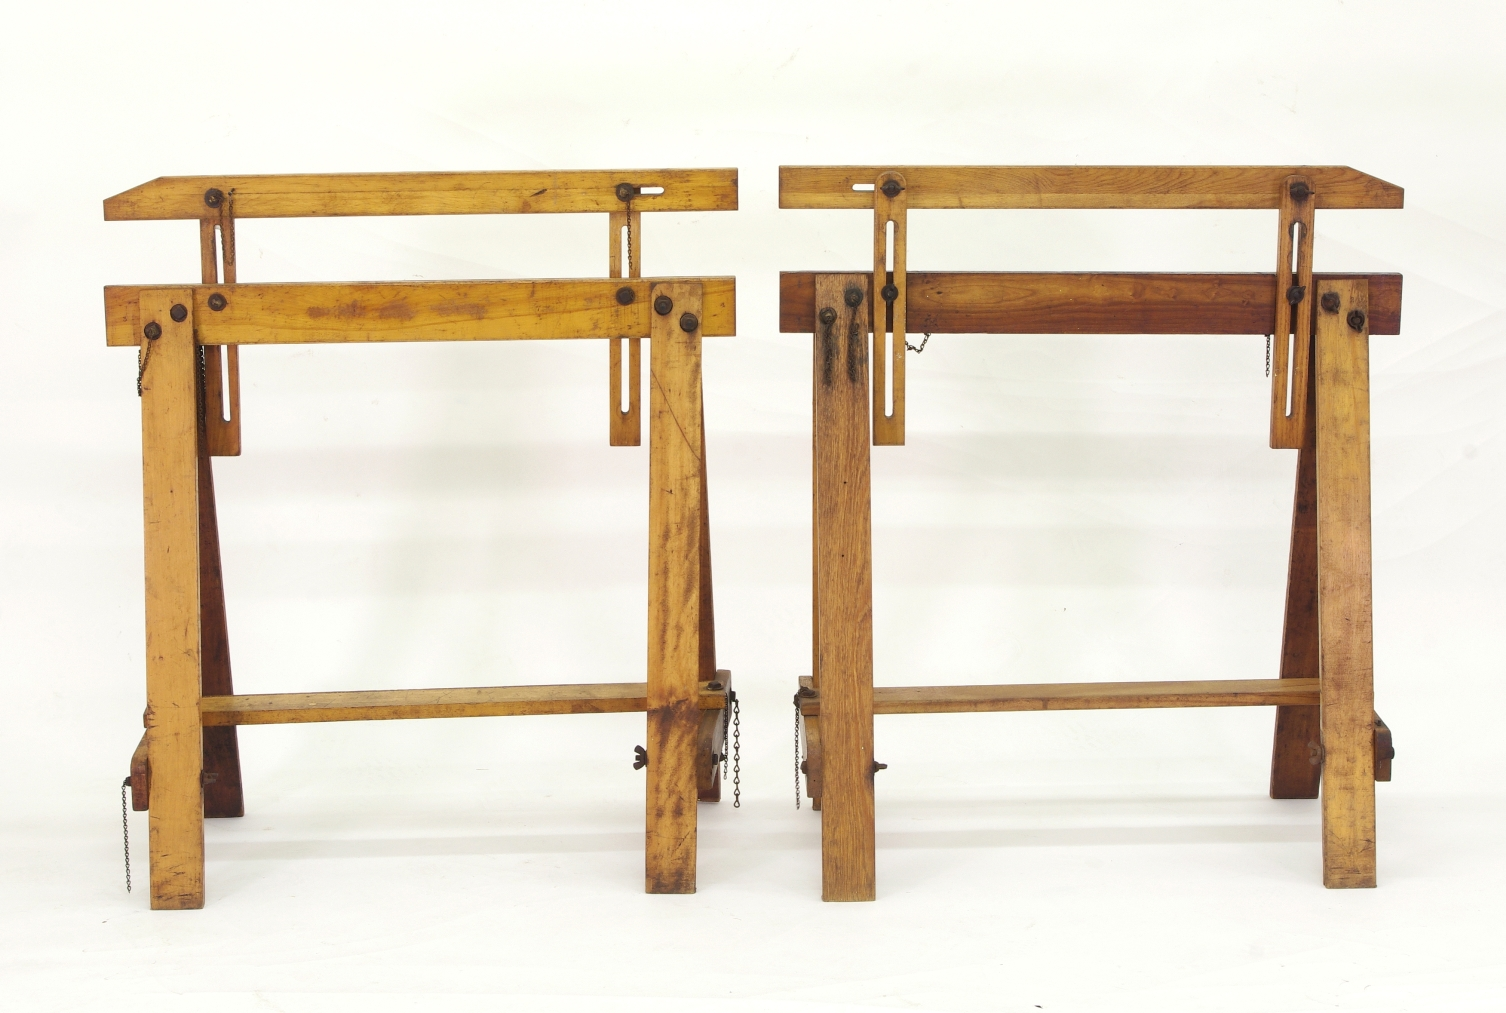 View 4: Pair of Adjustable Sawhorses c. 1920